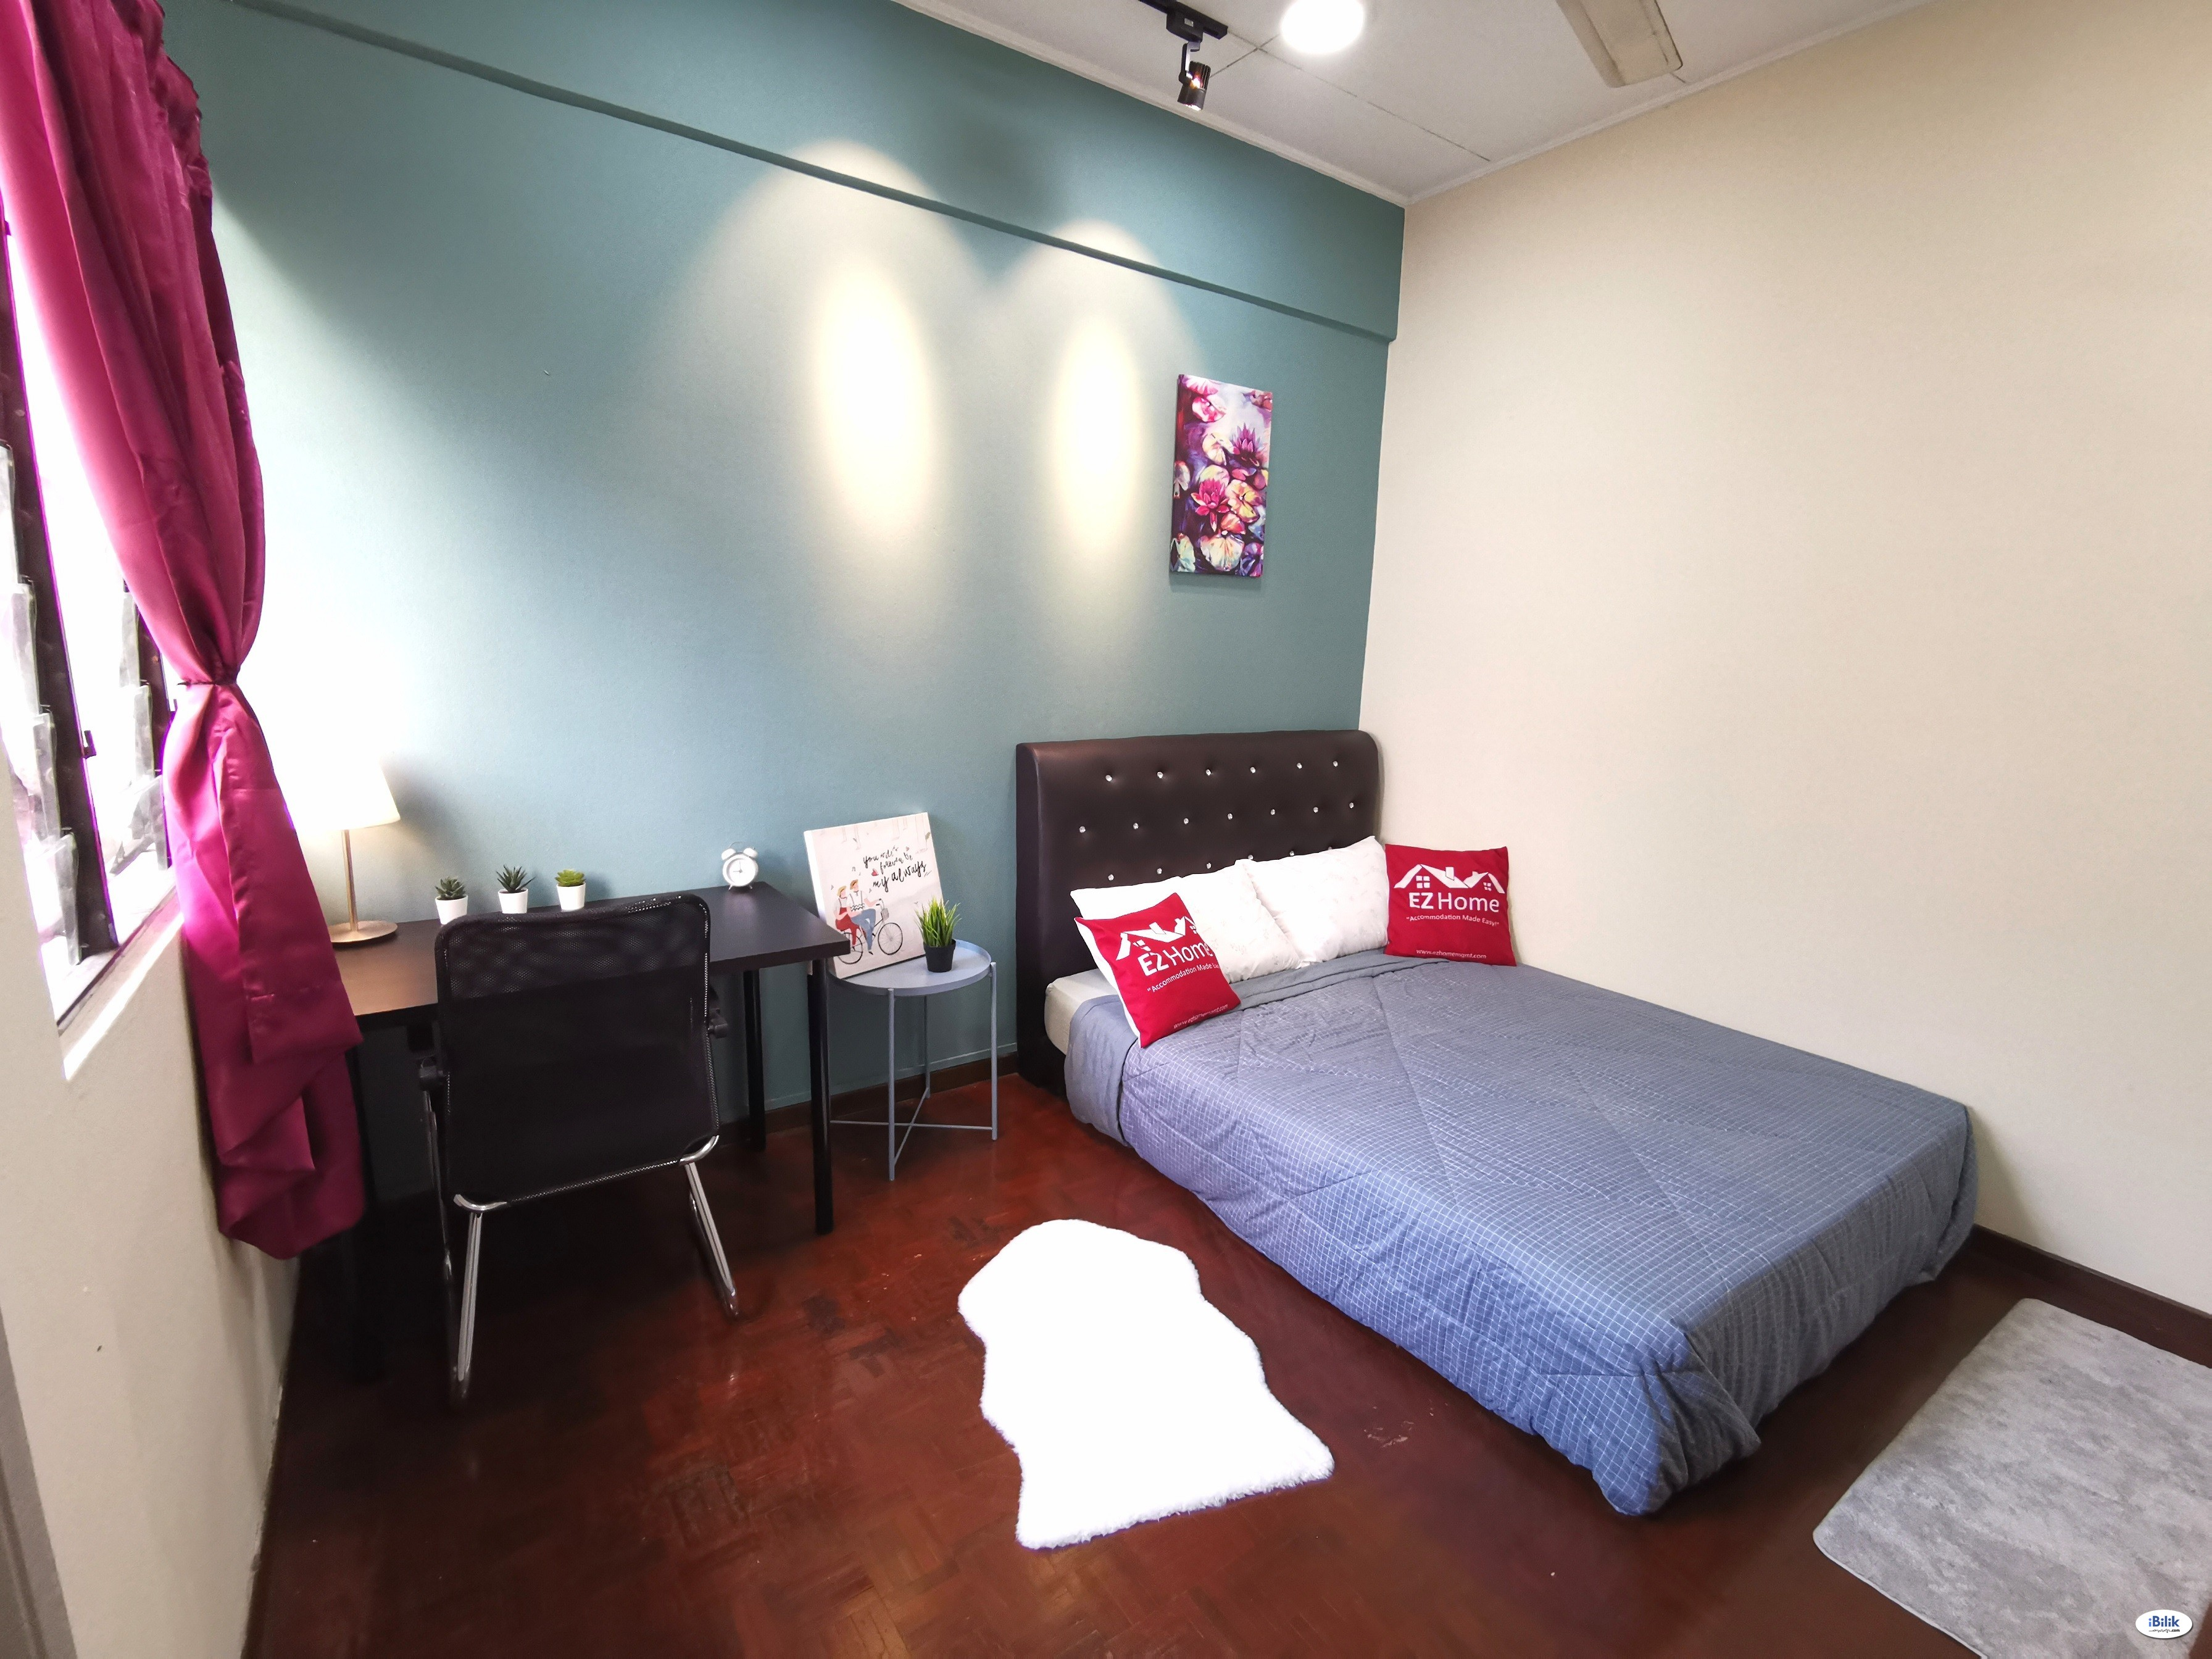 ✨[MEDIUM ROOM C/W BATHROOM]✨ 3 minutes to Taylor - PJS 7/4! 😊Come see to Believe it!😊